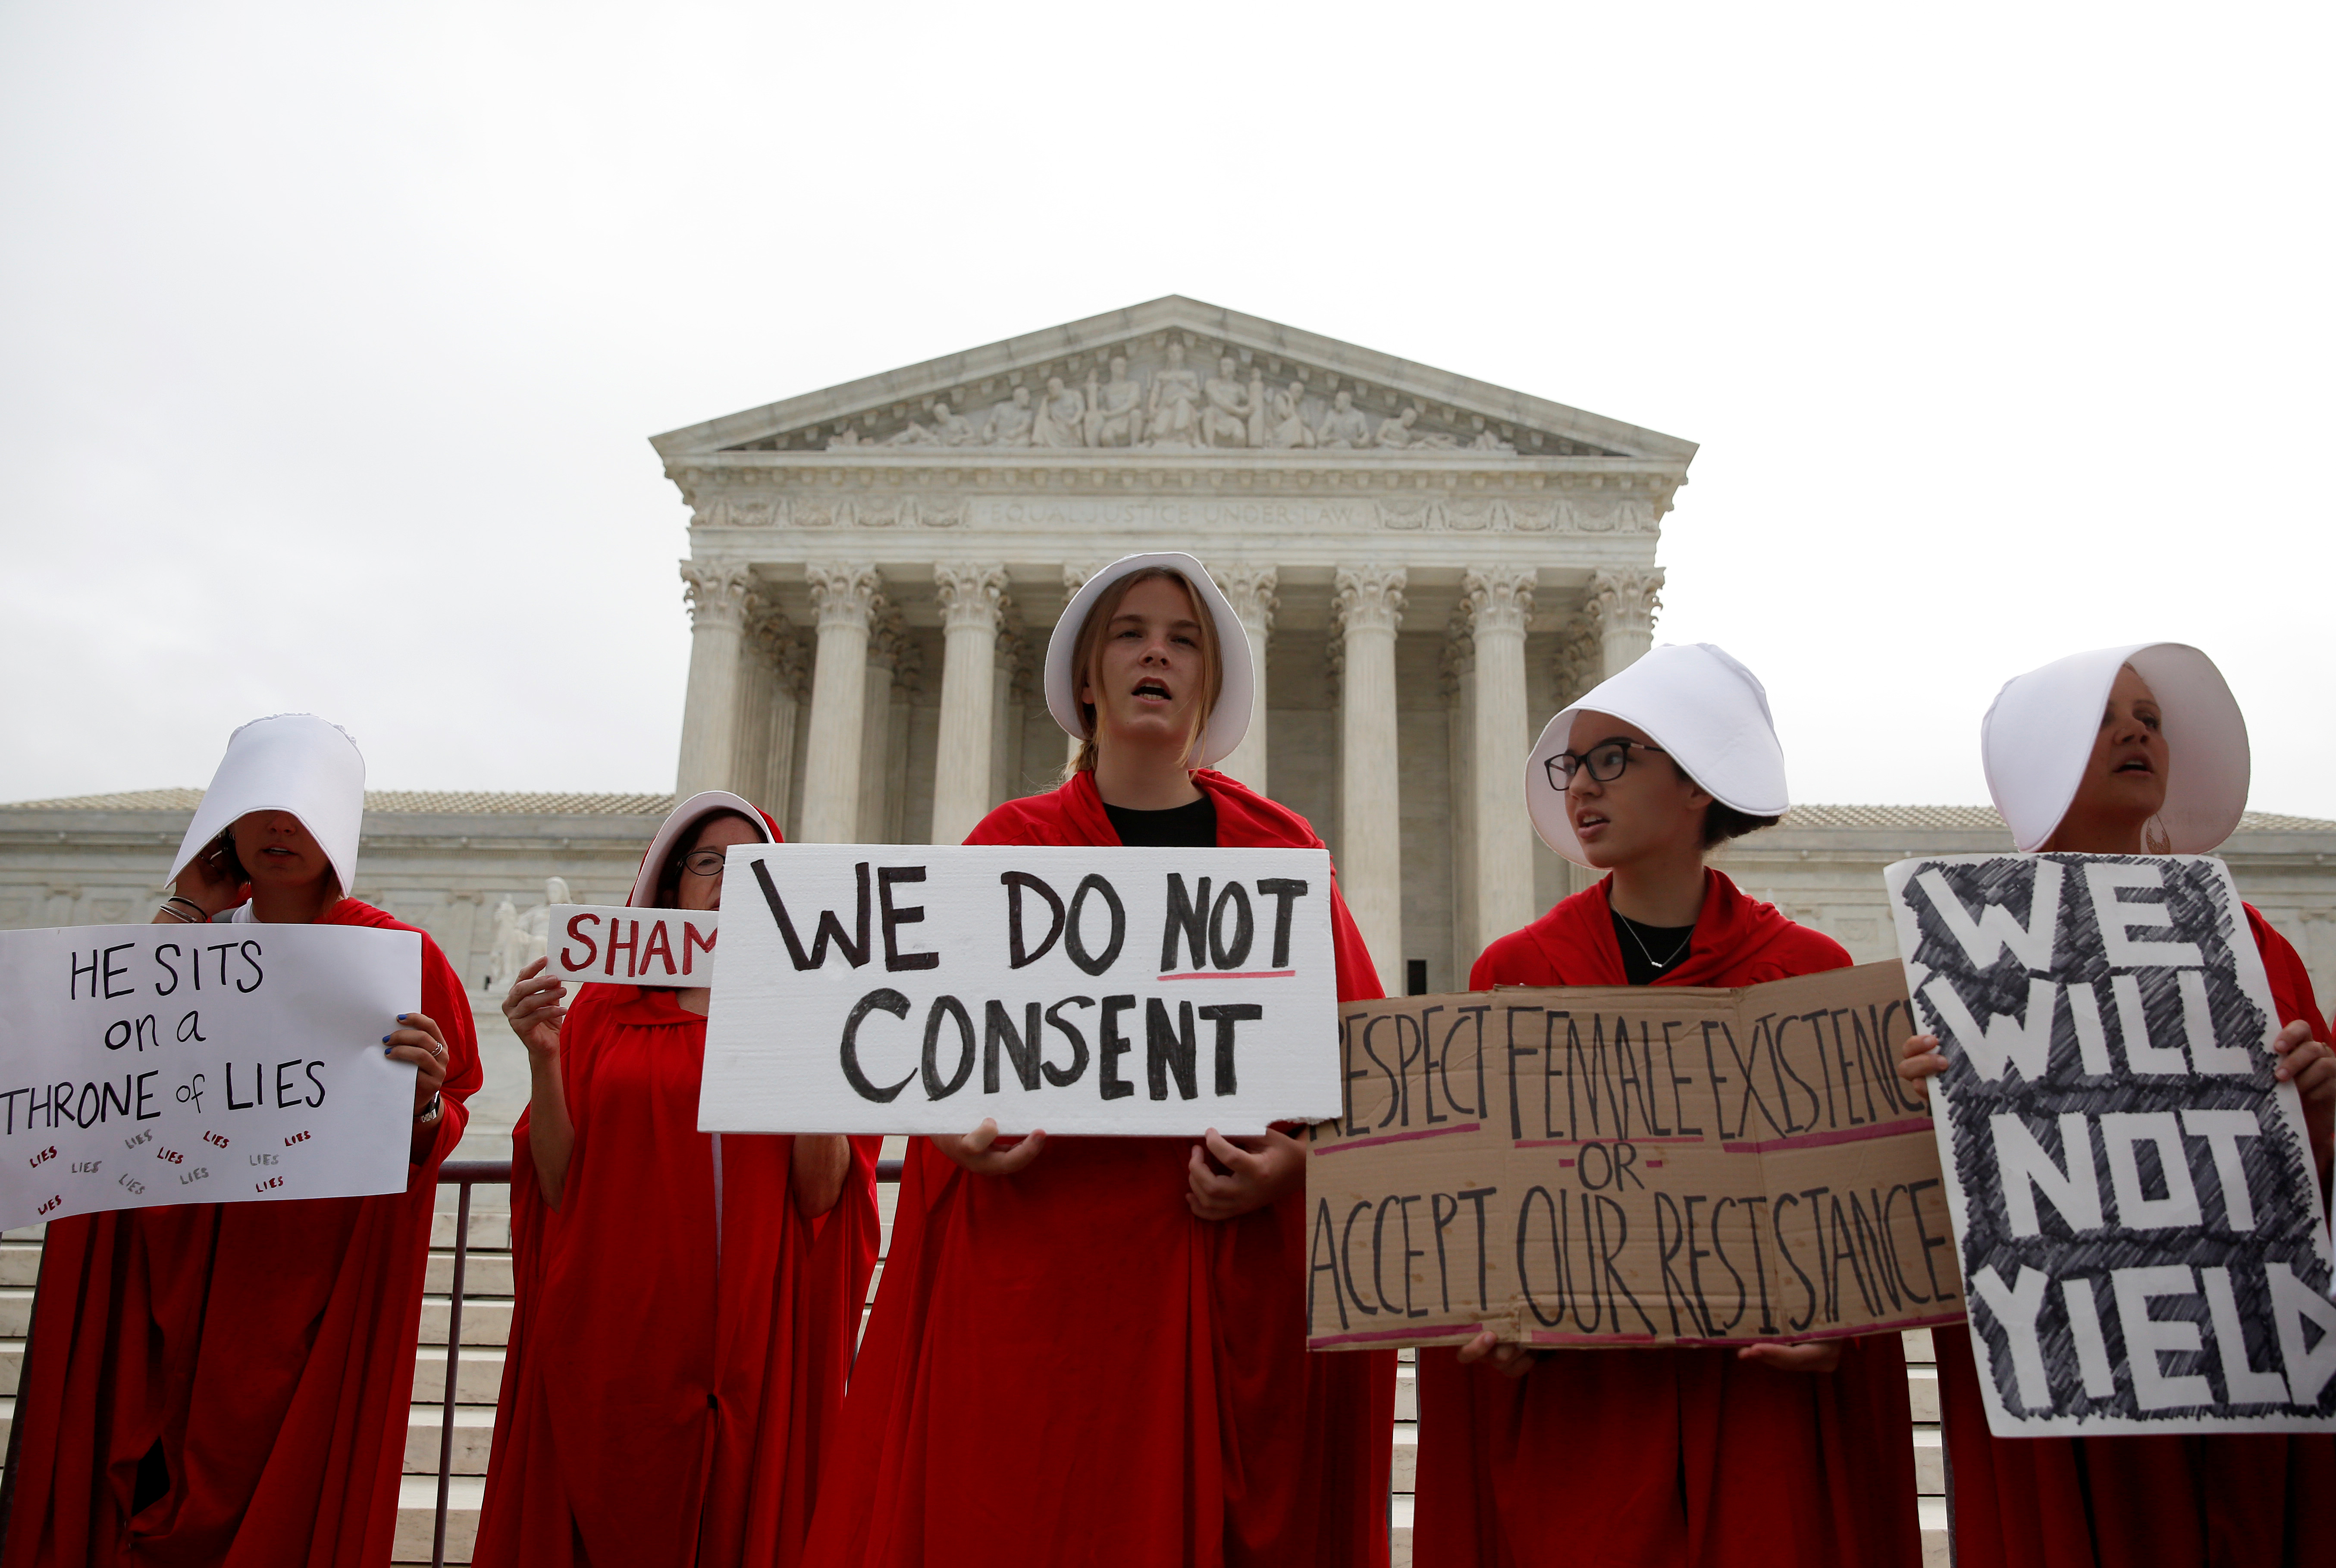 Protesters demonstrate on first day with newly sworn in Associate Justice Brett Kavanaugh on the court at the Supreme Court in Washington, U.S., October 9, 2018. REUTERS/Joshua Roberts